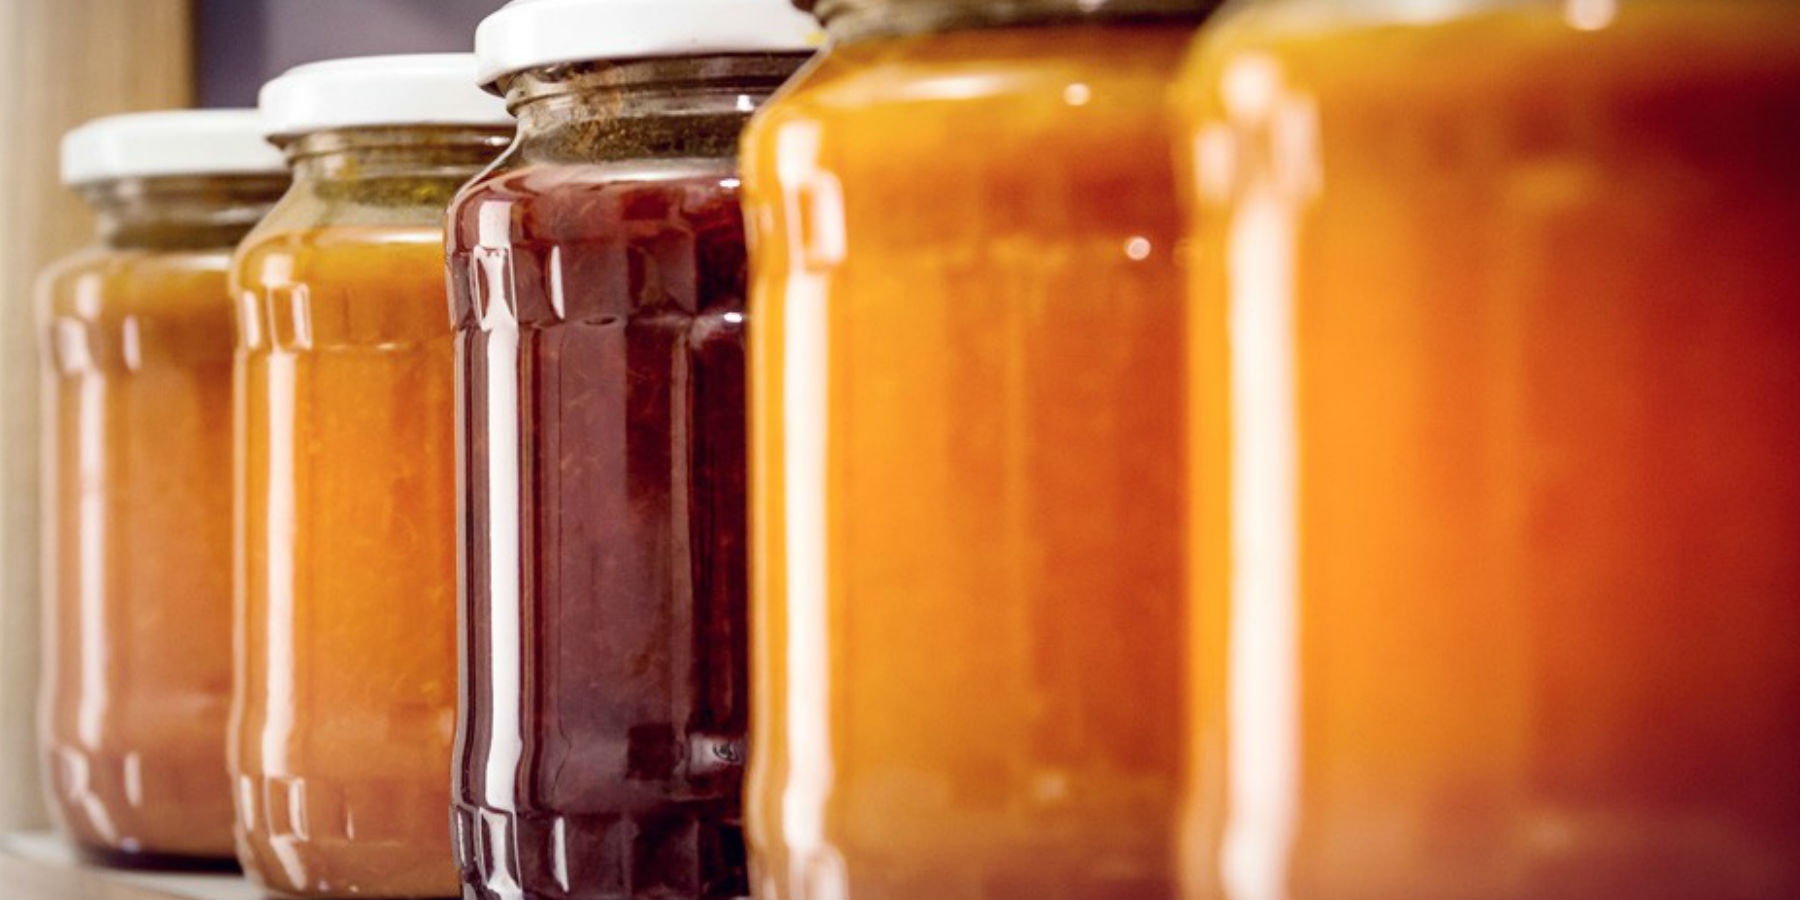 bio-preservation-of-food-products-biopreservation-lactic-acid-bacteria